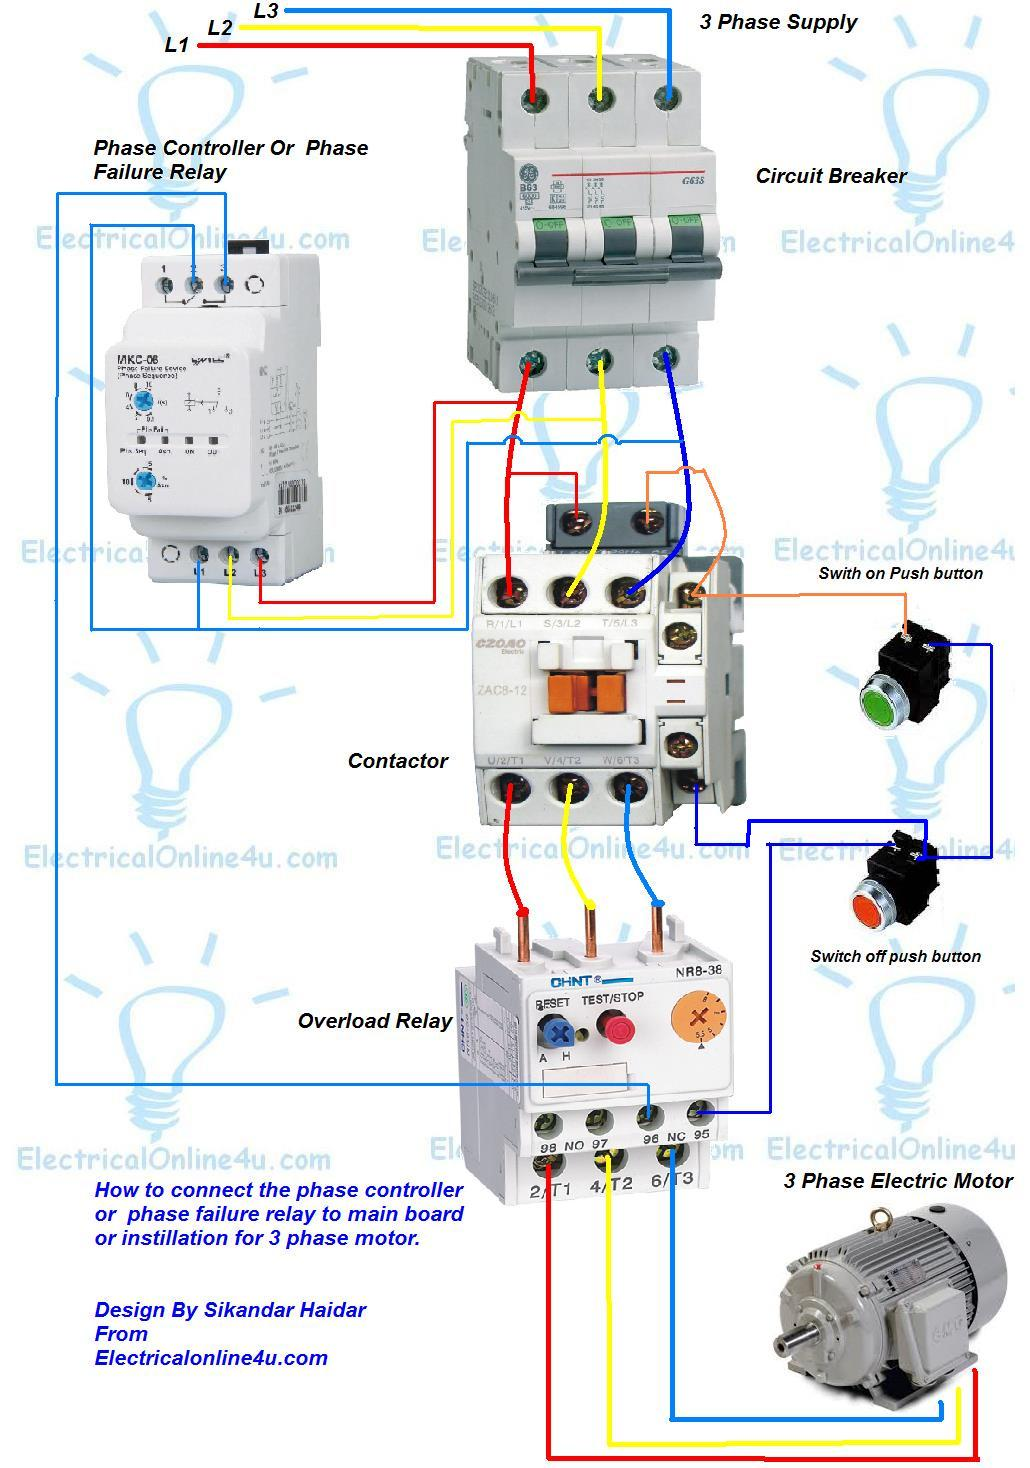 Phase%2Bfailure%2Brelay%2B %2Bphase%2Bcontroller%2Binstilaion%2Bin%2B3%2Bphase%2BMain%2Bboard%2Bor%2Bfor%2B3%2Bphase%2Bmotor phase controller wiring phase failure relay diagram electrical 3 pole contactor wiring diagram at n-0.co